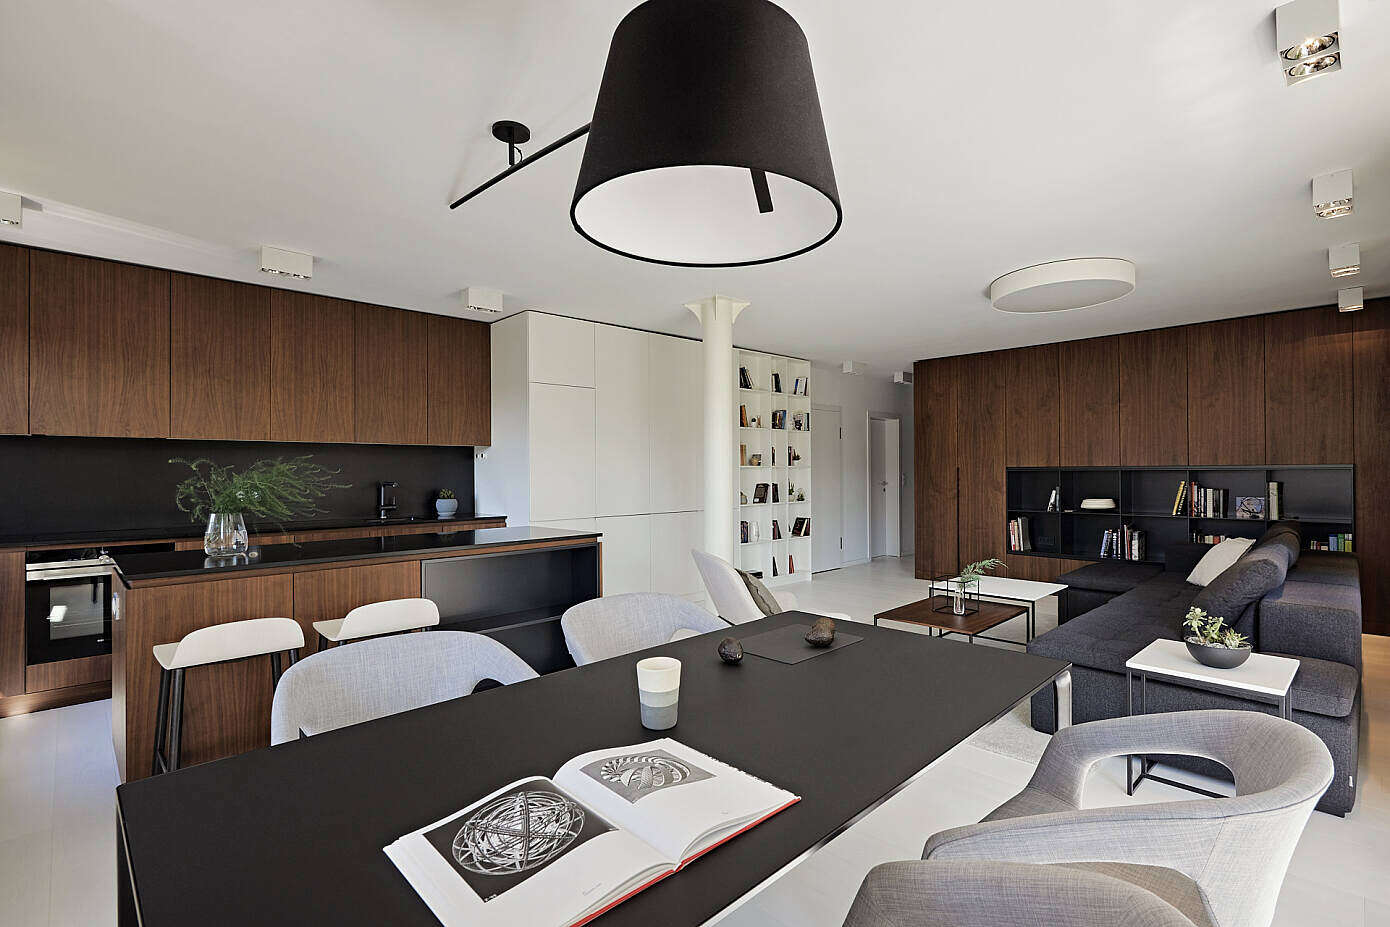 Airy And Spatious by Fimera Design Studio